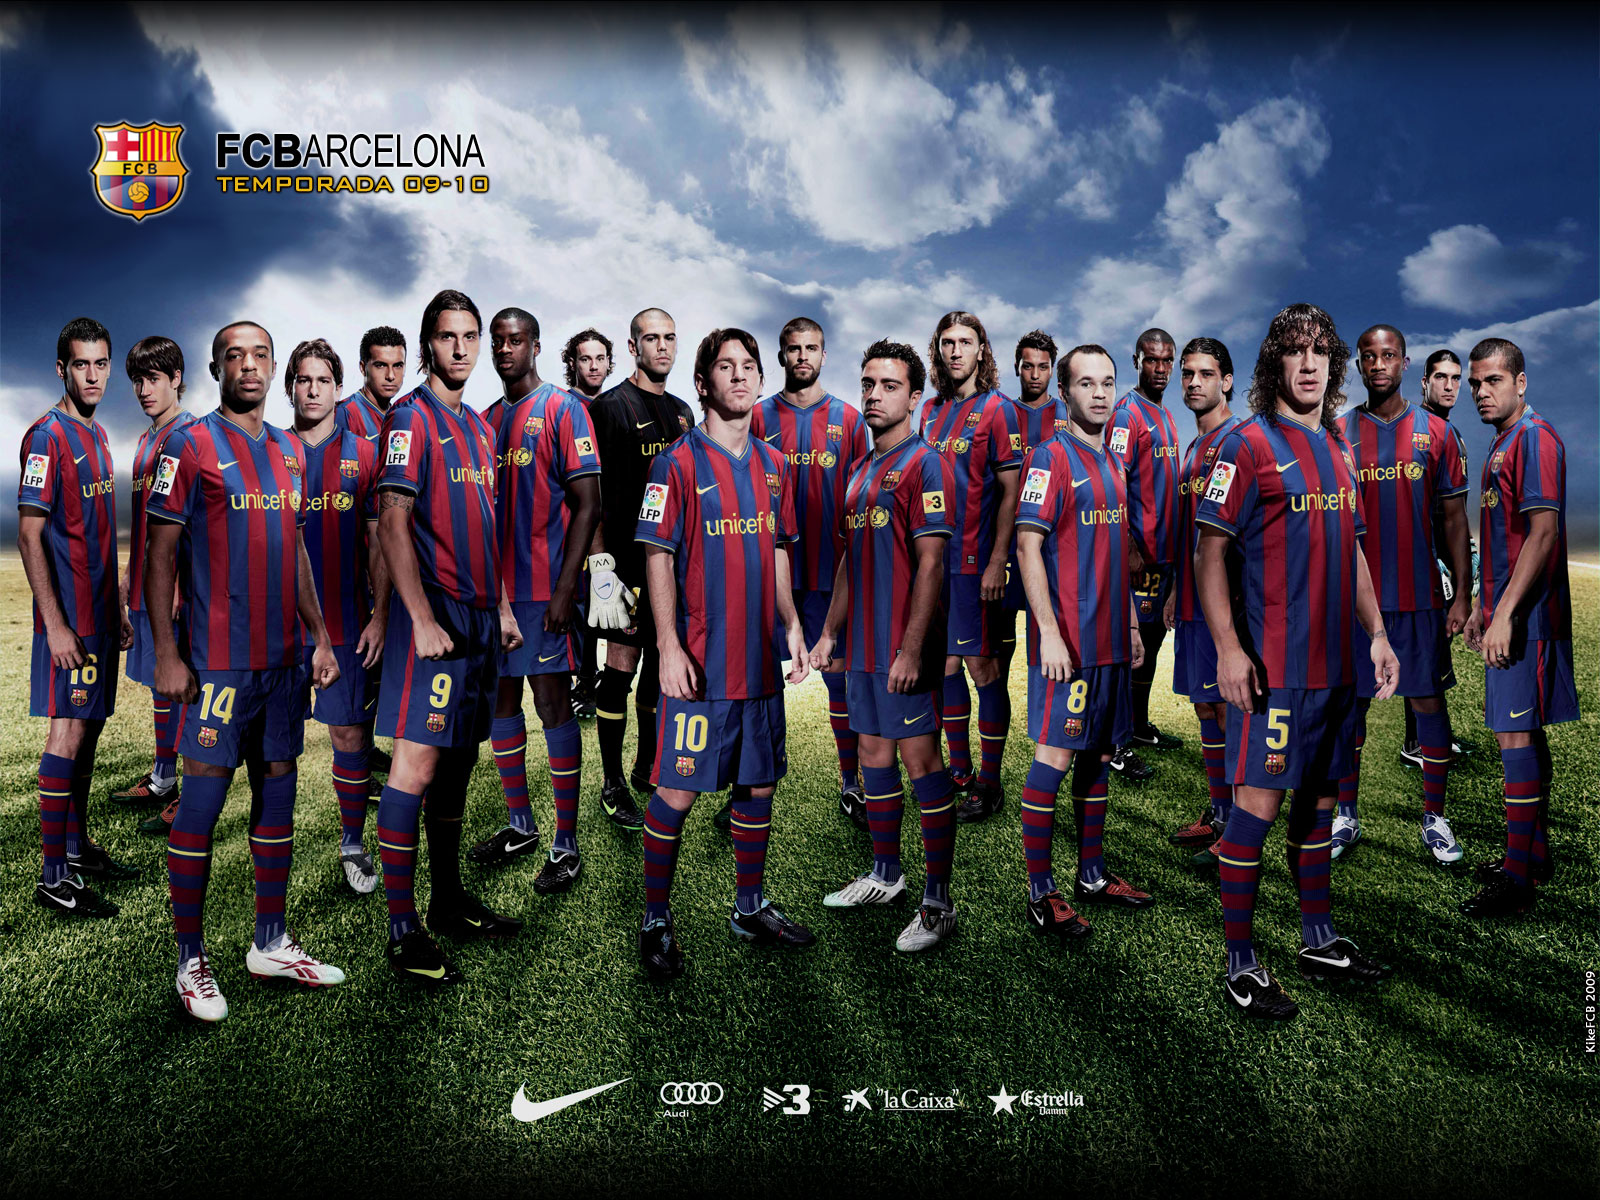 COOL IMAGES: FC Barcelona team Wallpapers